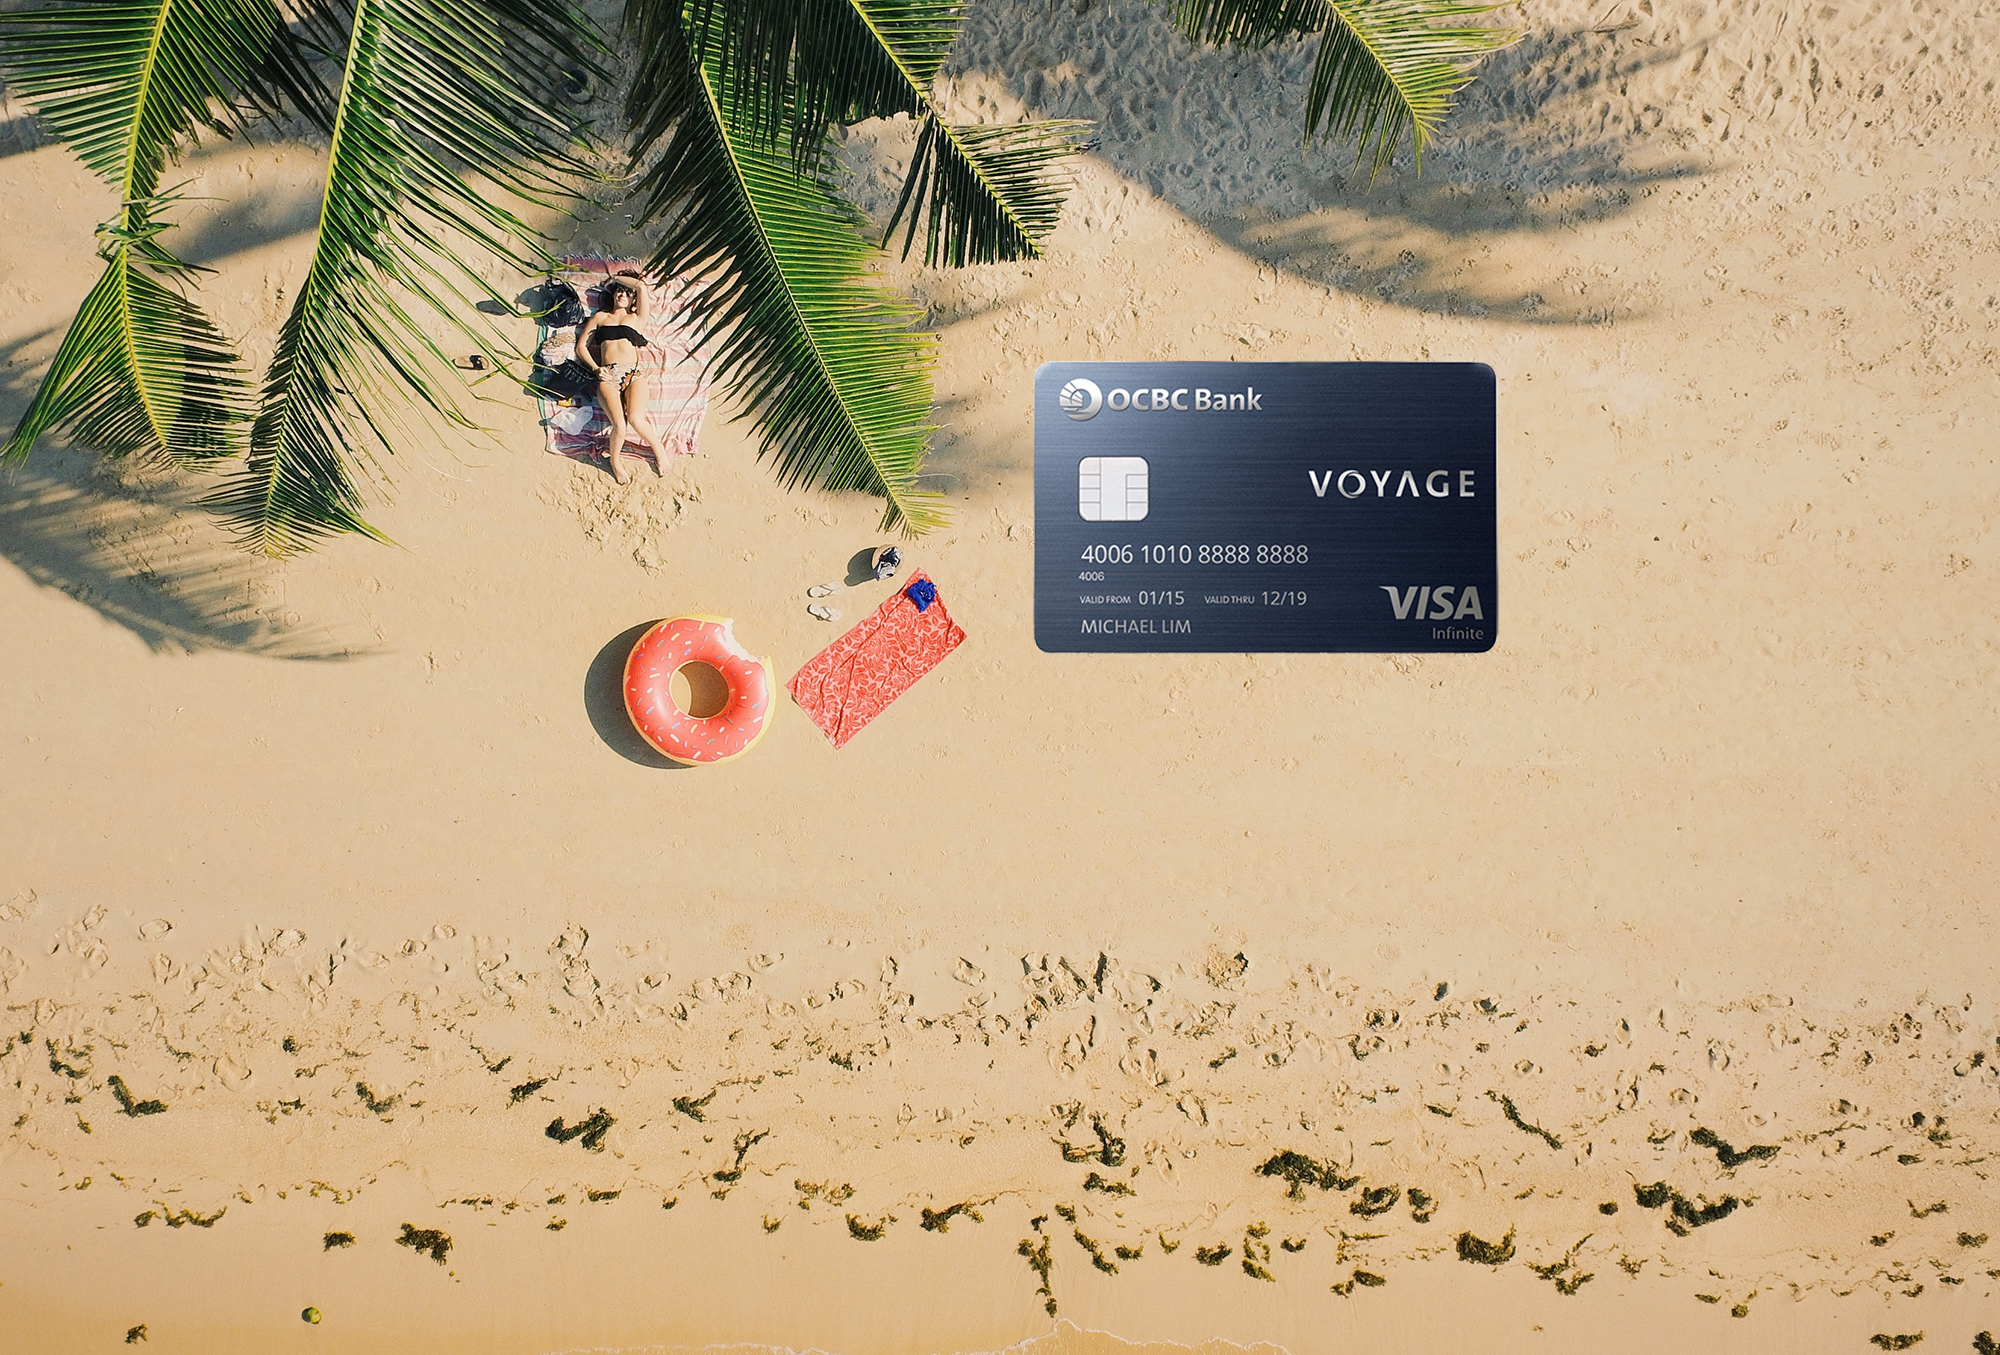 OCBC's new Voyage Payment Facility – generate miles from 1.9 cents each